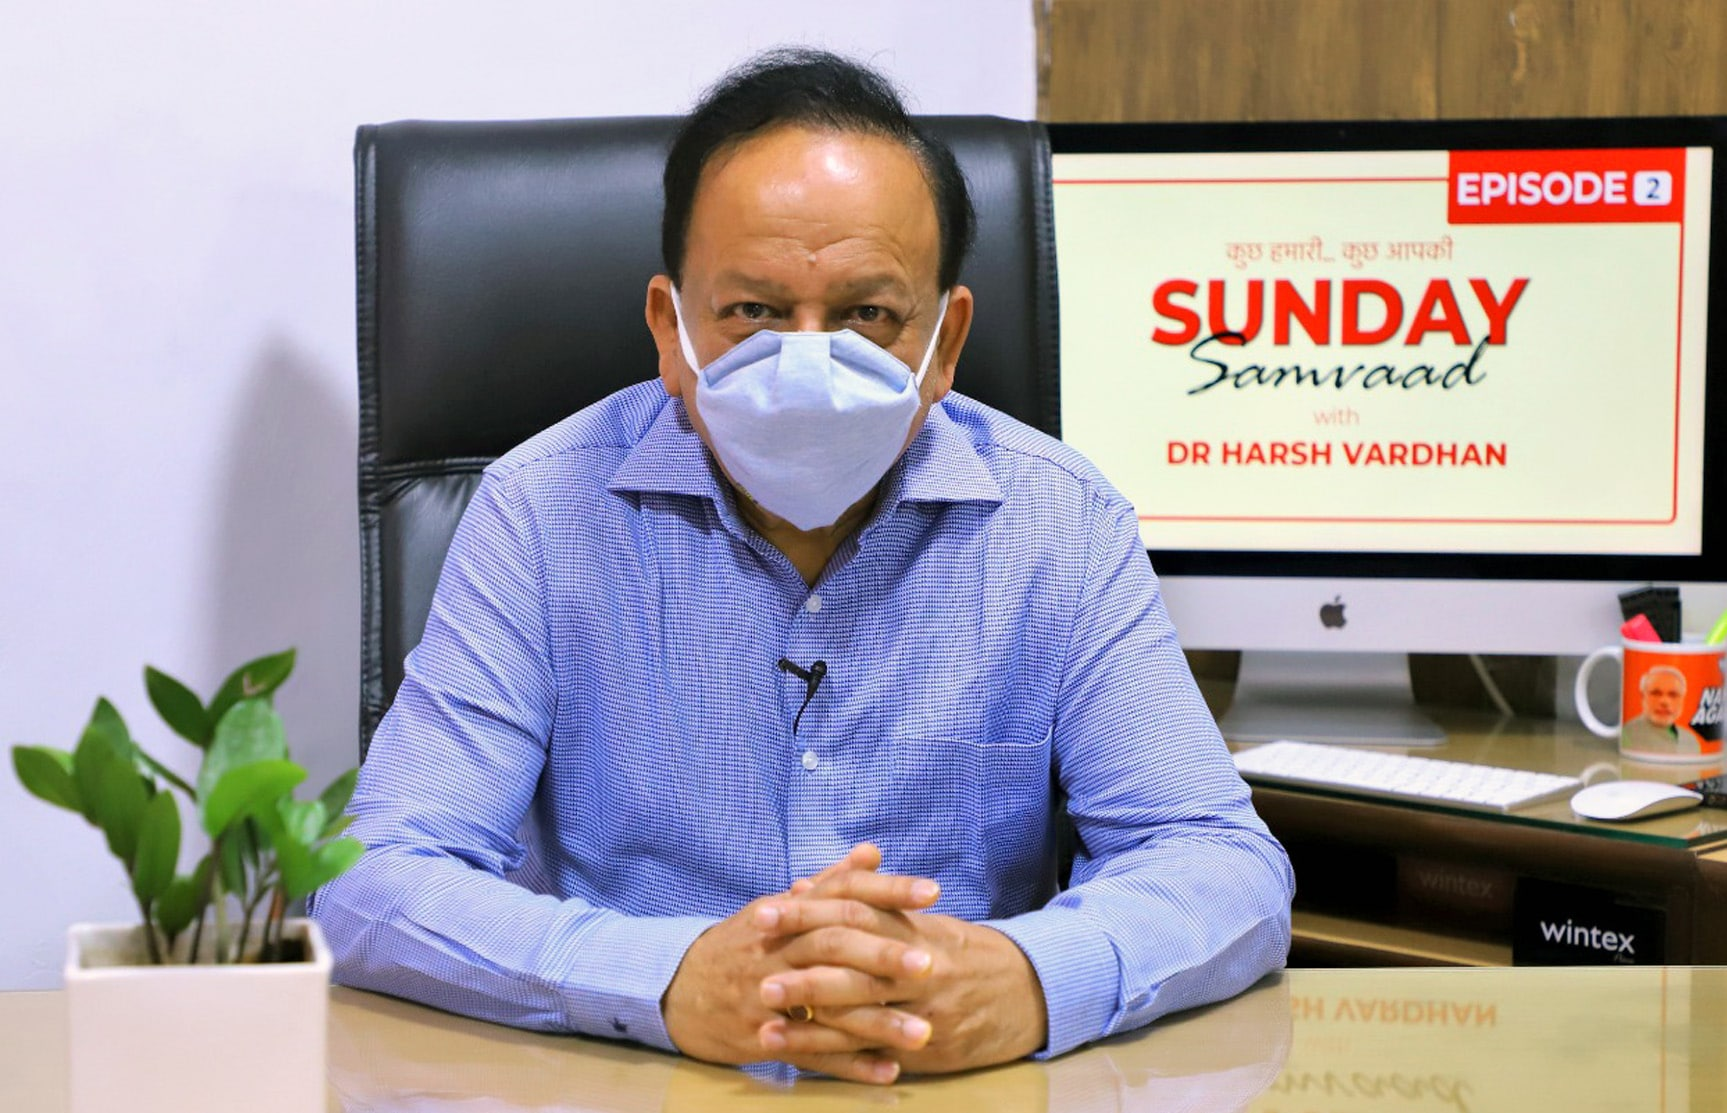 The Union Minister for Health & Family Welfare, Science & Technology and Earth Sciences, Dr. Harsh Vardhan interacting with social media users during Sunday Samvaad-2, in New Delhi.